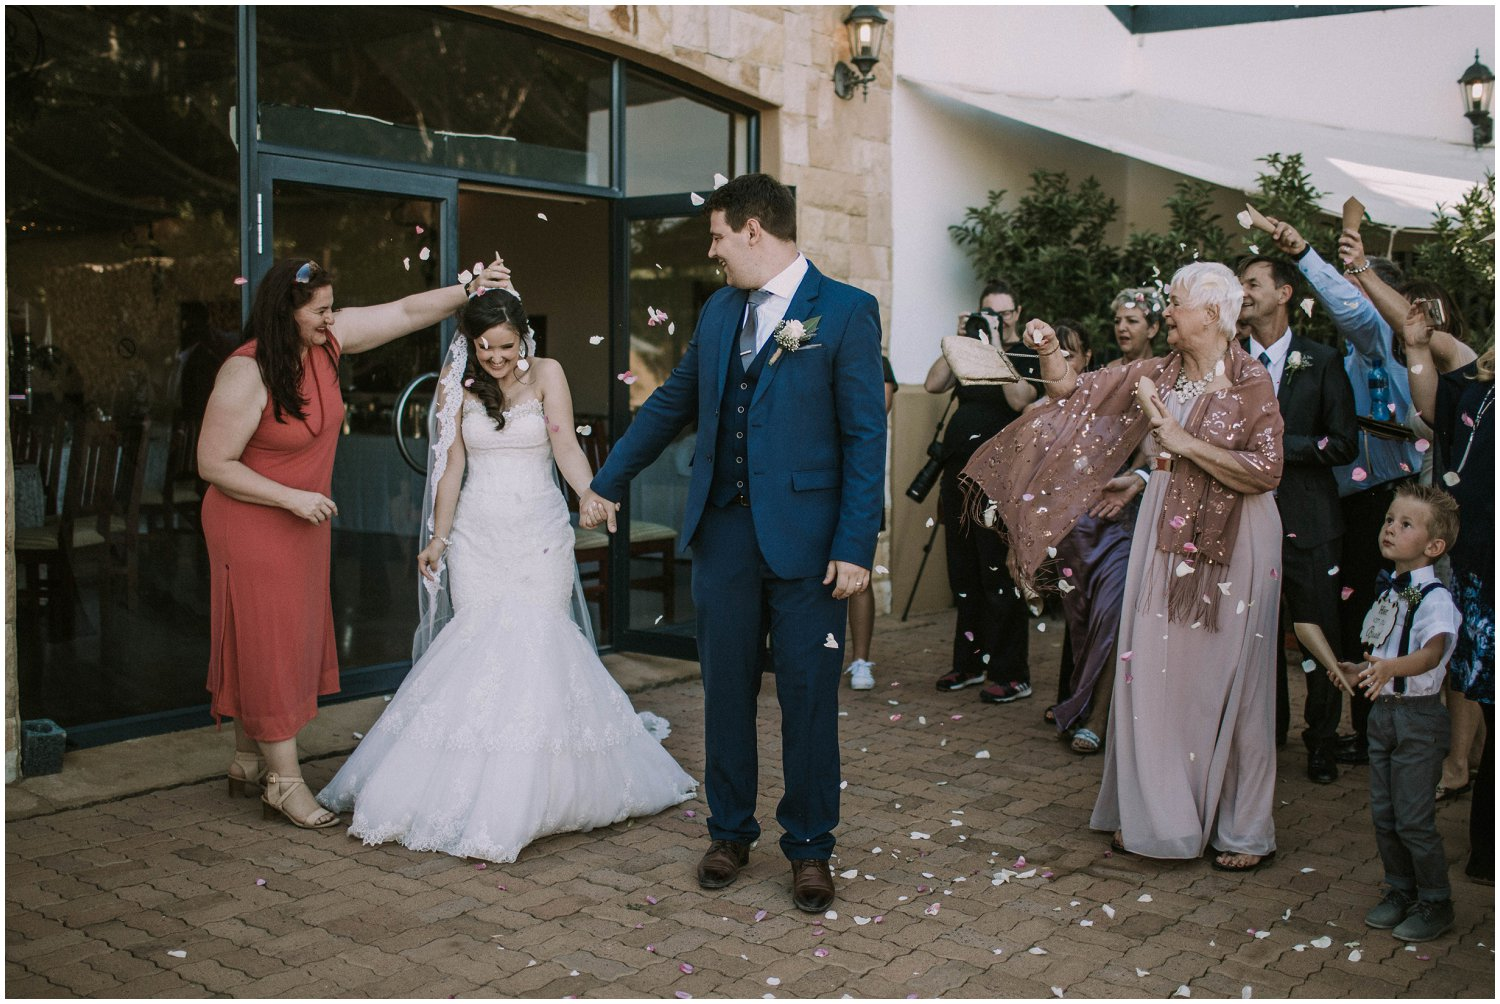 Top Artistic Creative Documentary Wedding Photographer Cape Town South Africa Rue Kruger_0332.jpg